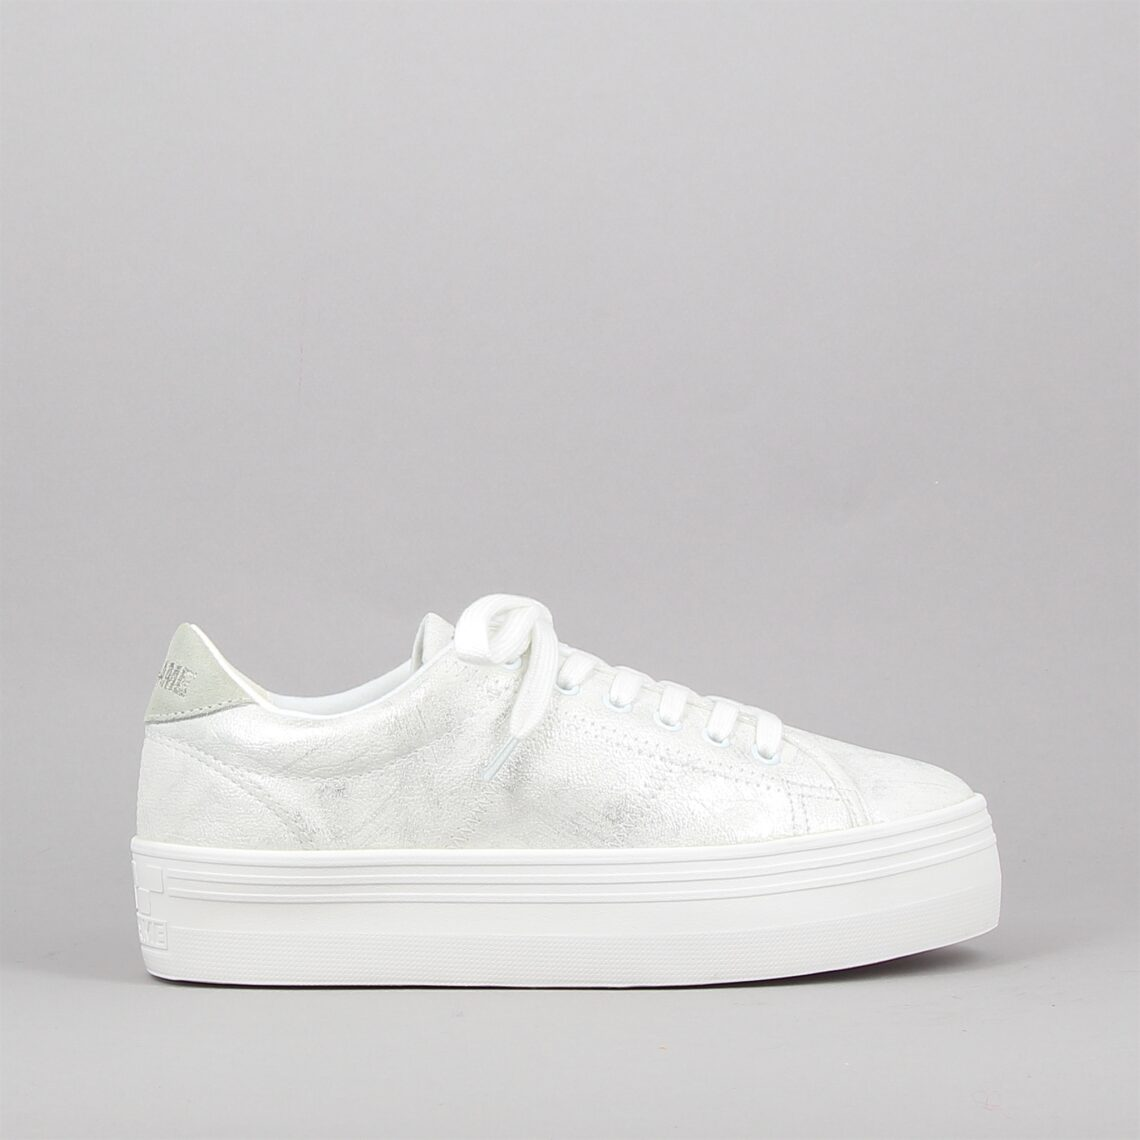 plato m sneaker after